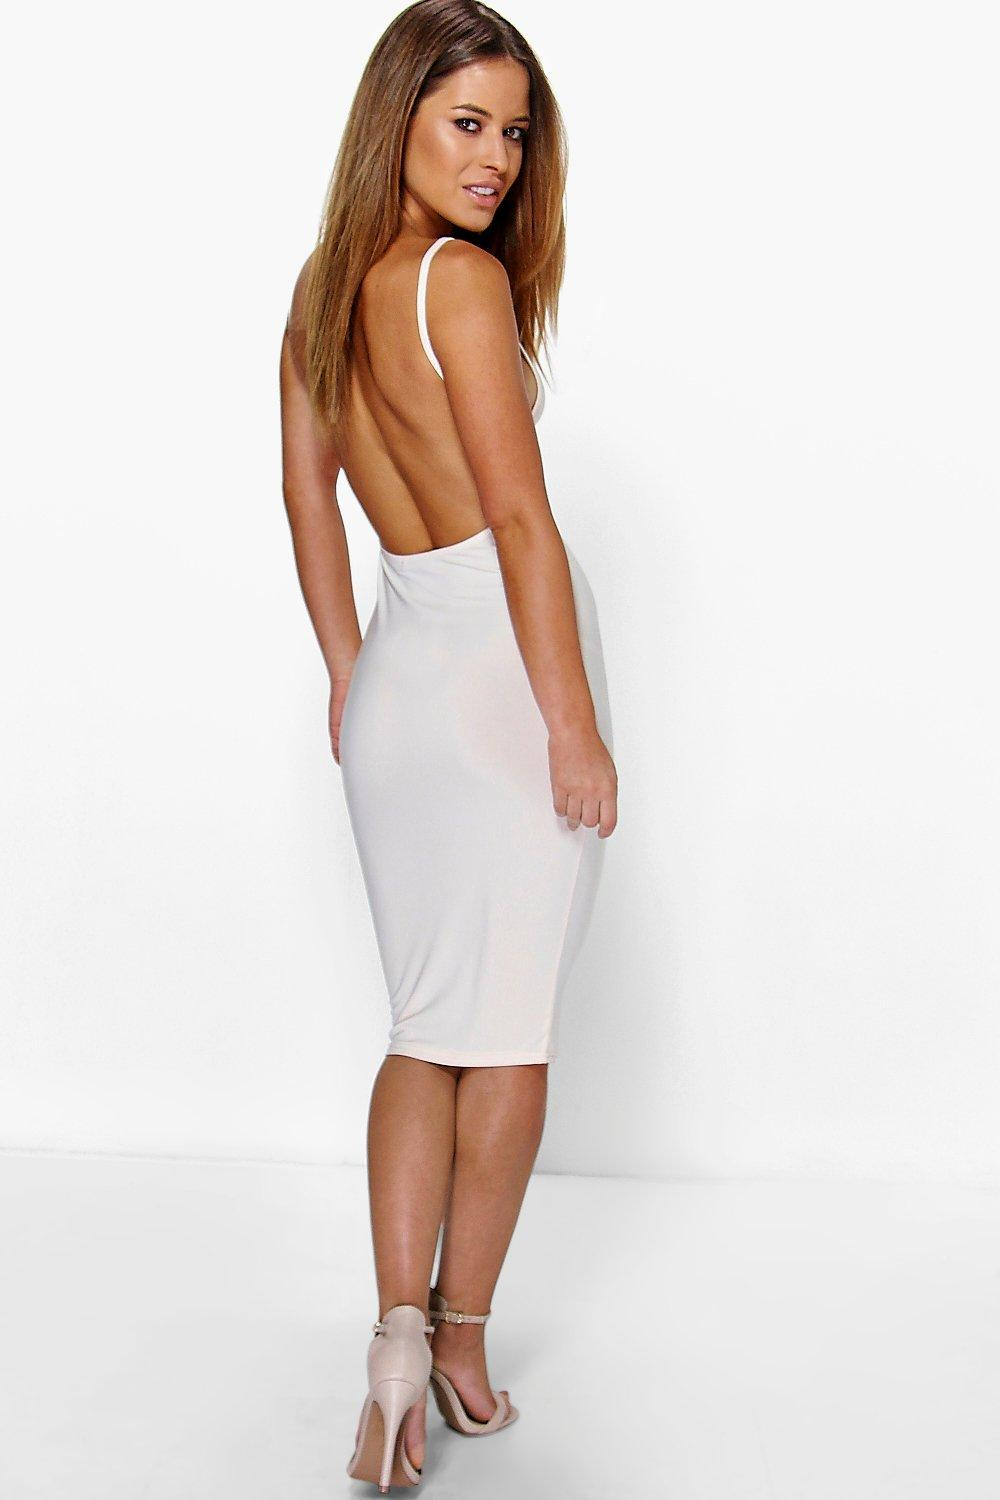 Petite Renee Backless Strappy Bodycon Dress